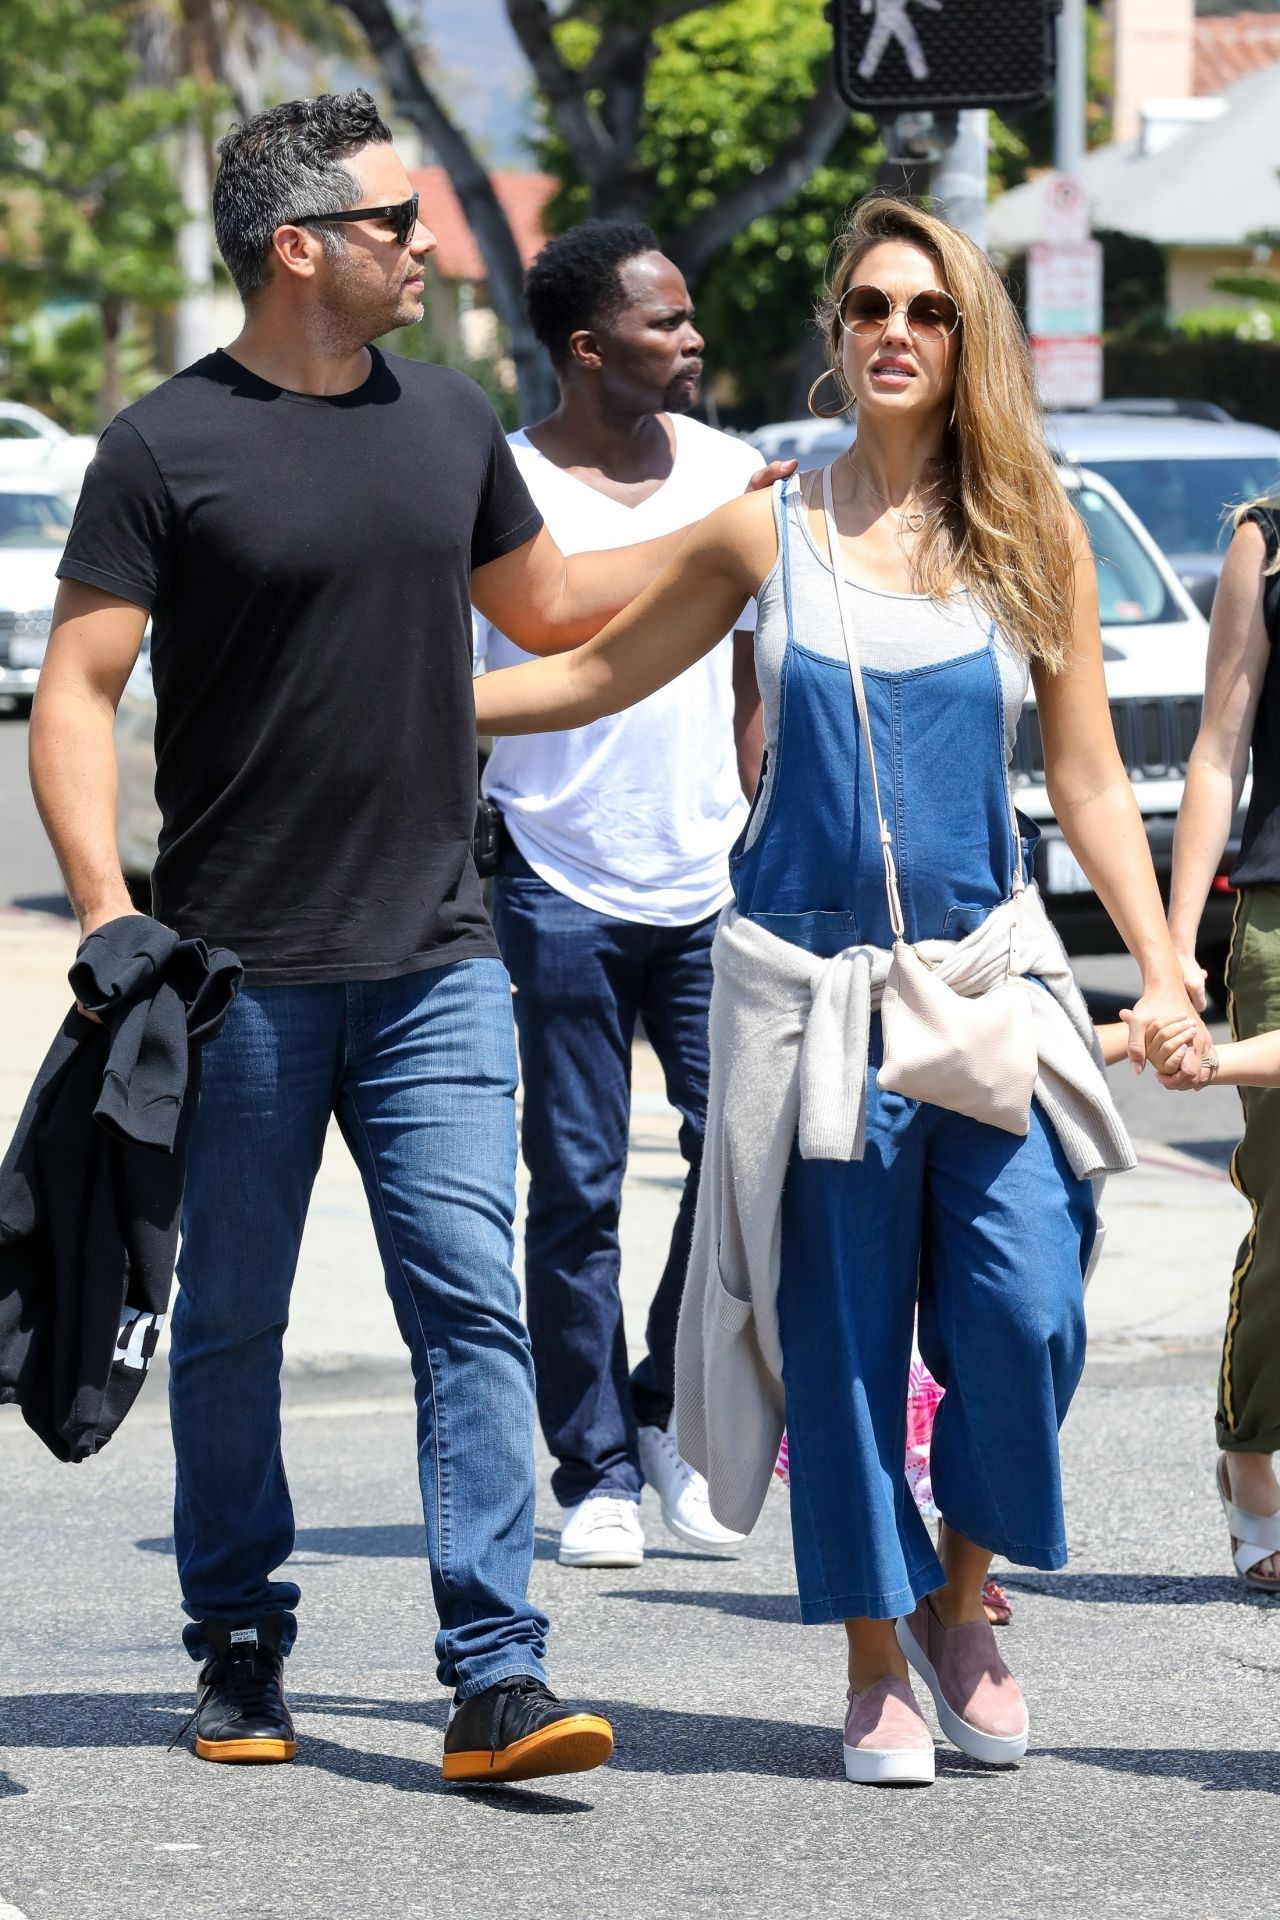 http://celebmafia.com/wp-content/uploads/2017/08/jessica-alba-and-cash-warren-out-in-los-angeles-08-20-2017-1.jpg